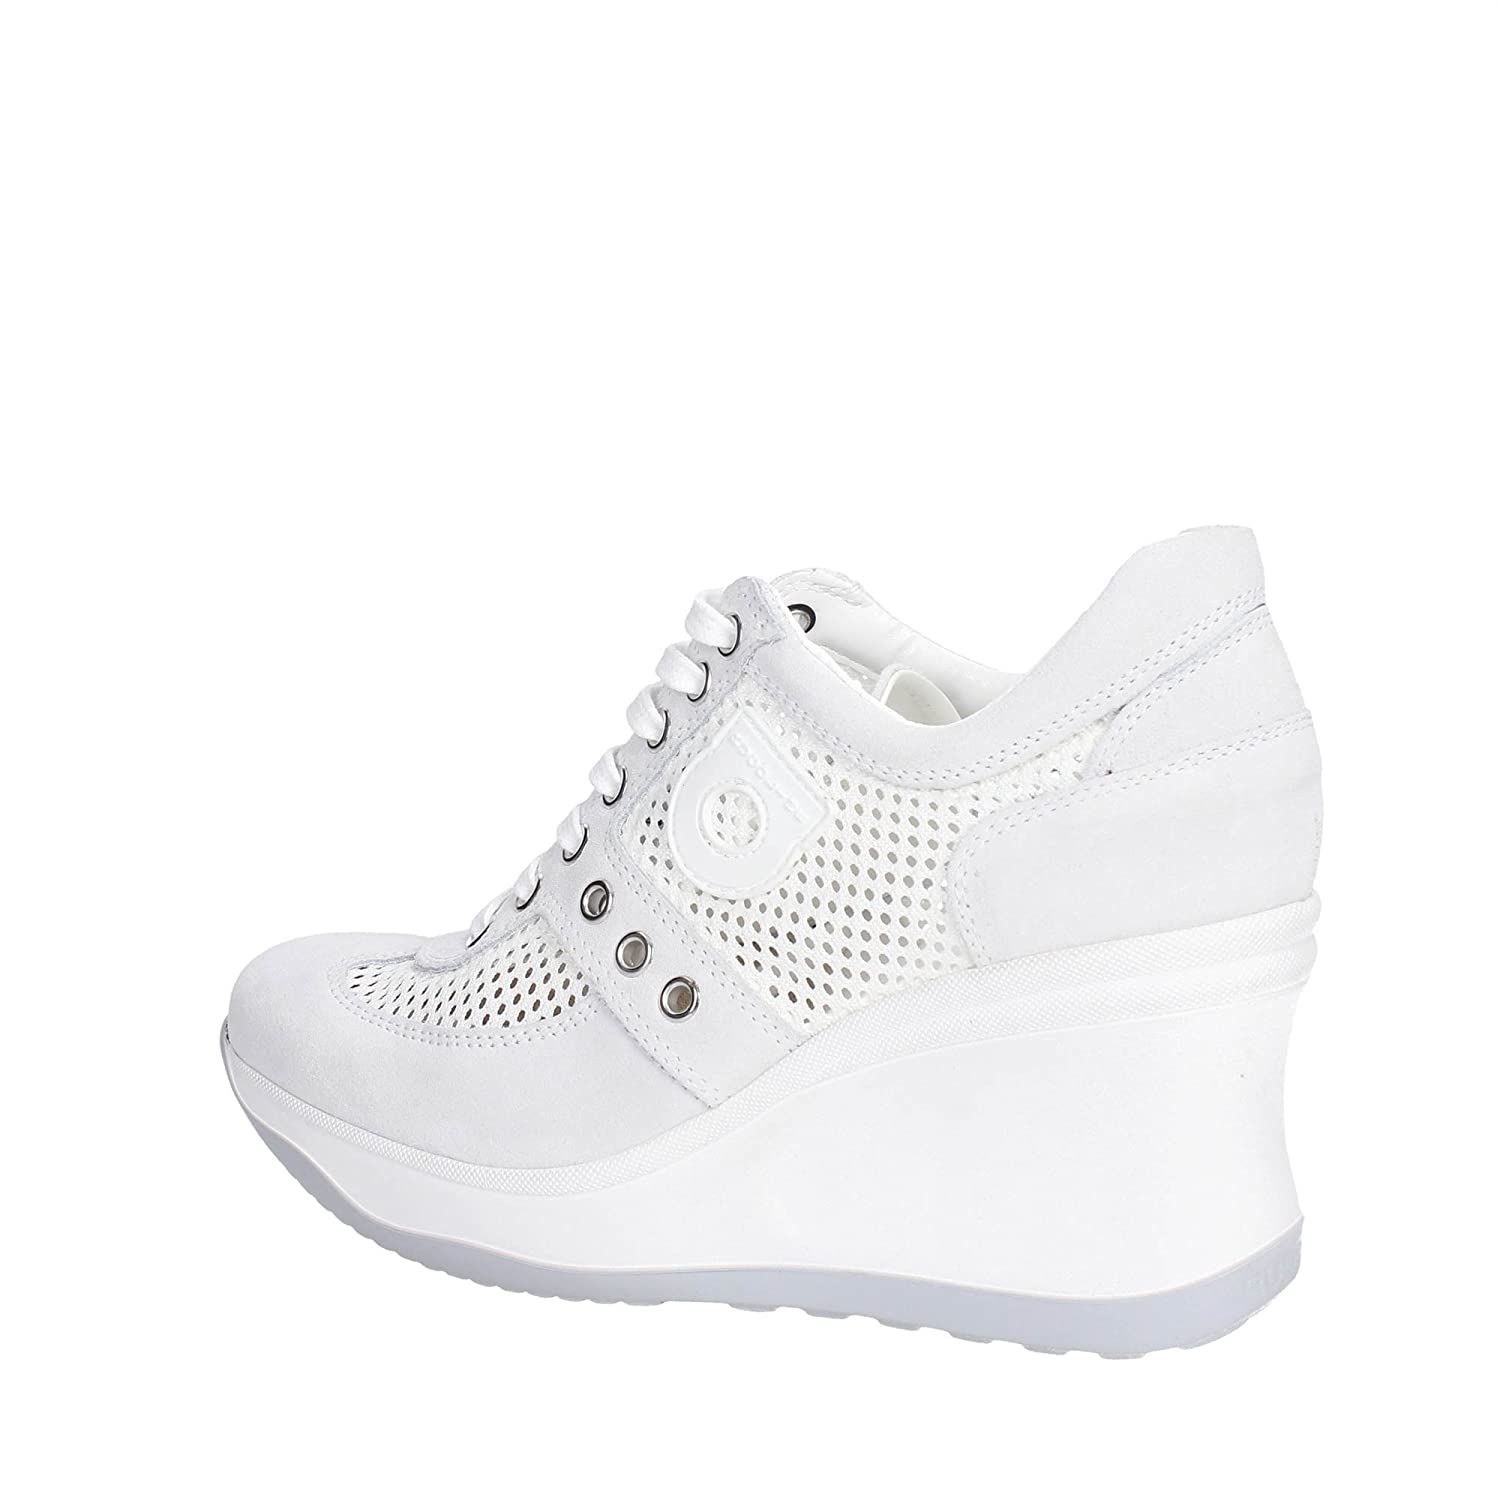 AGILE BY RUCOLINE LINE 1800-82627 1800 A LEON Turnschuhe Turnschuhe Turnschuhe Wedges WEDGE MITTEL HOCH NEUE KOLLEKTION FRÜHLING SOMMER 2016 LEDER WEISS 7fb5a5